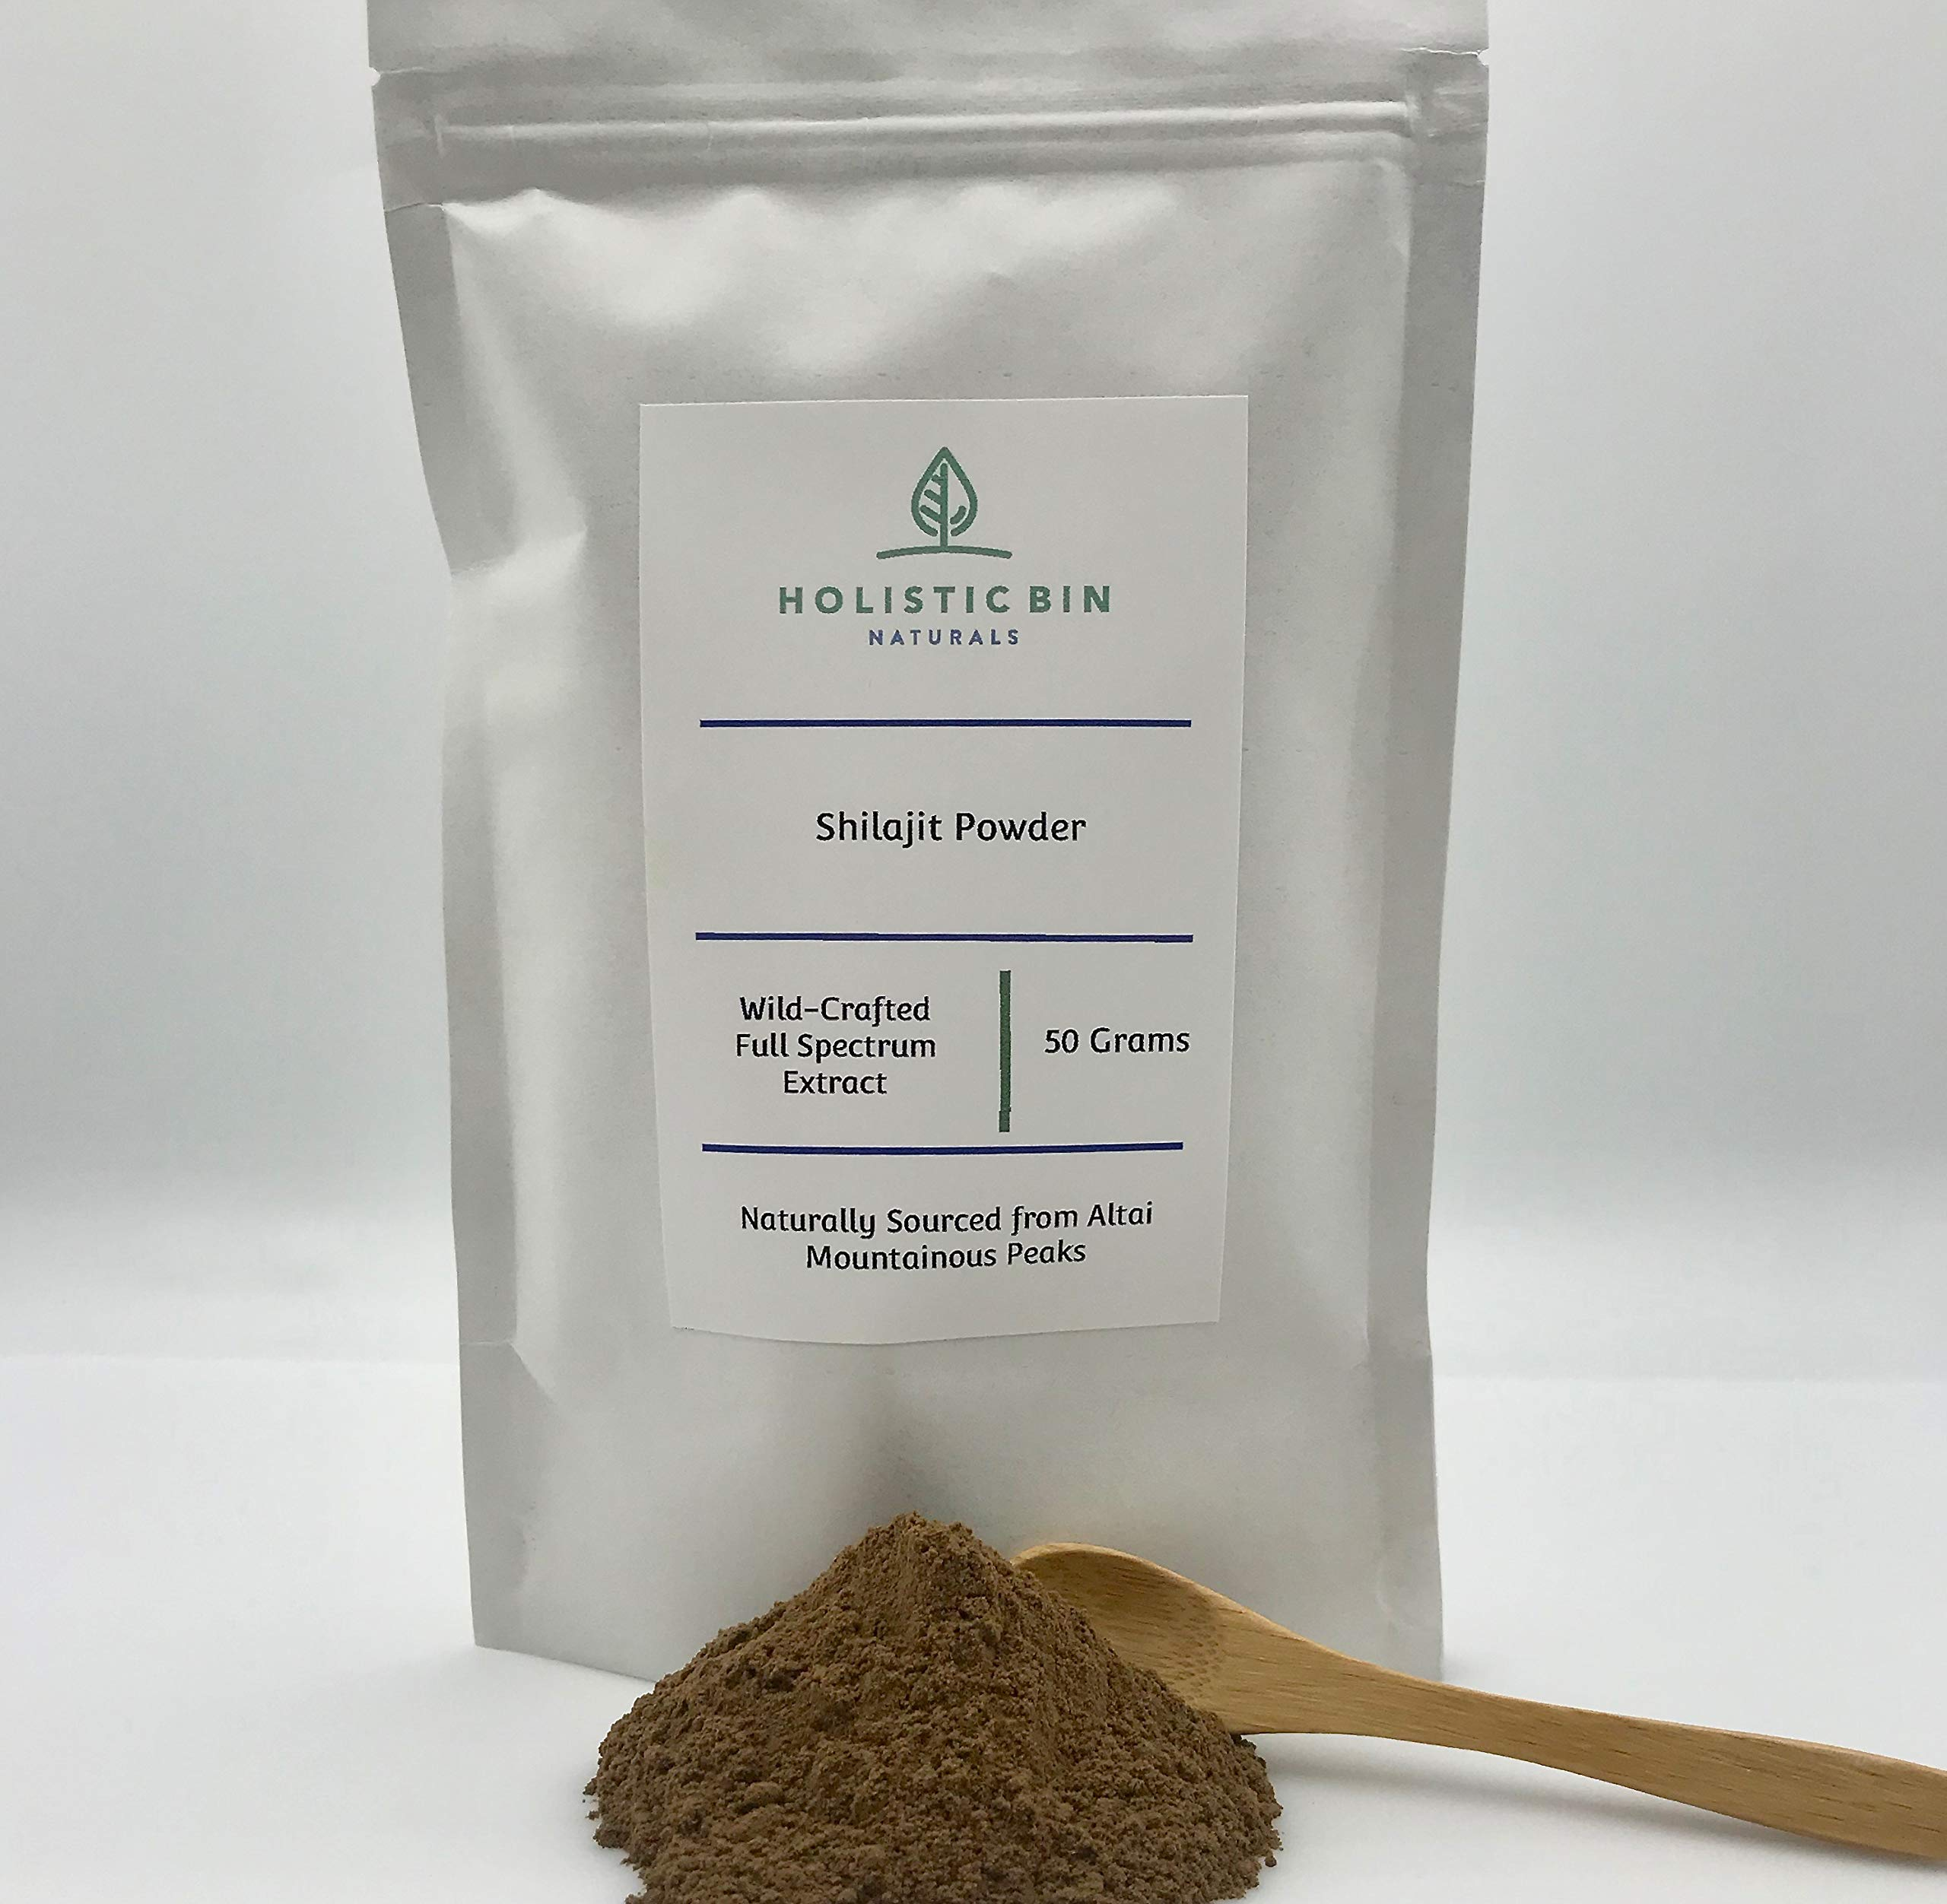 Raw Shilajit Powder by Holistic Bin - Wildcrafted, Full Spectrum Extract - (50 Servings) Natural Organic Fulvic Acid and Trace Minerals - for Natural Weight Loss, Nootropic & Potent Adaptogen